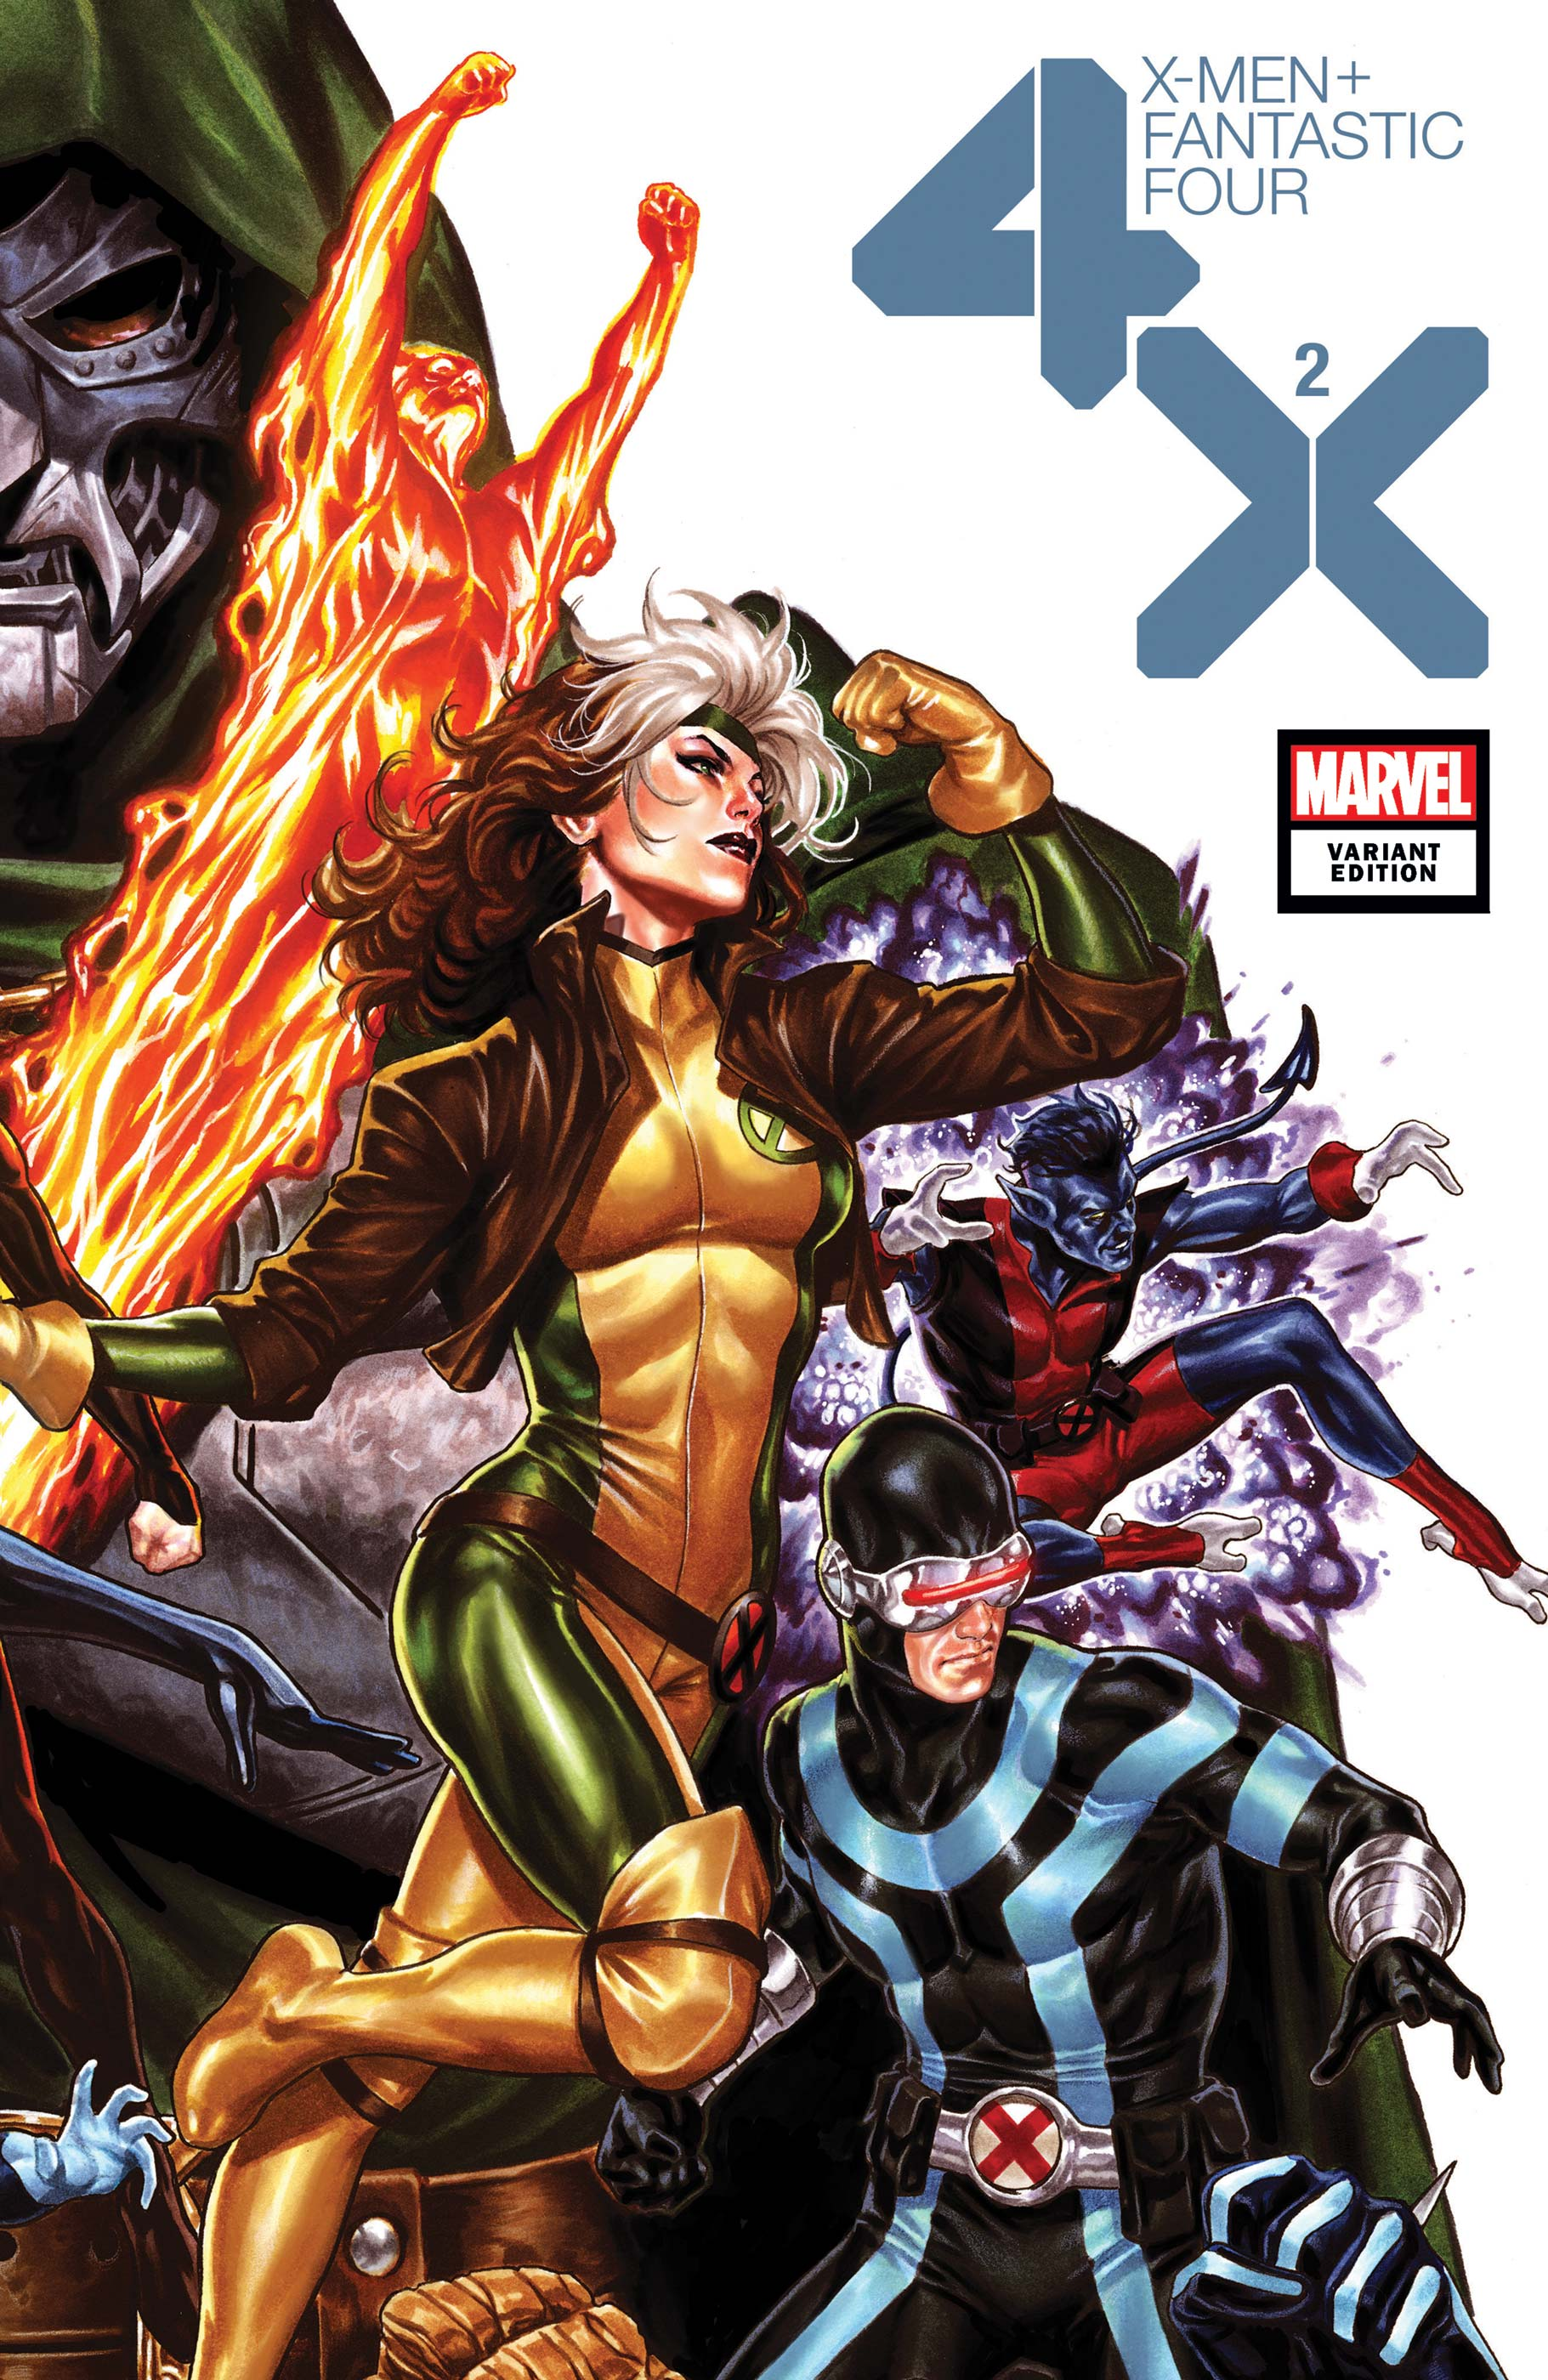 X-Men/Fantastic Four (2020) #2 (Variant)